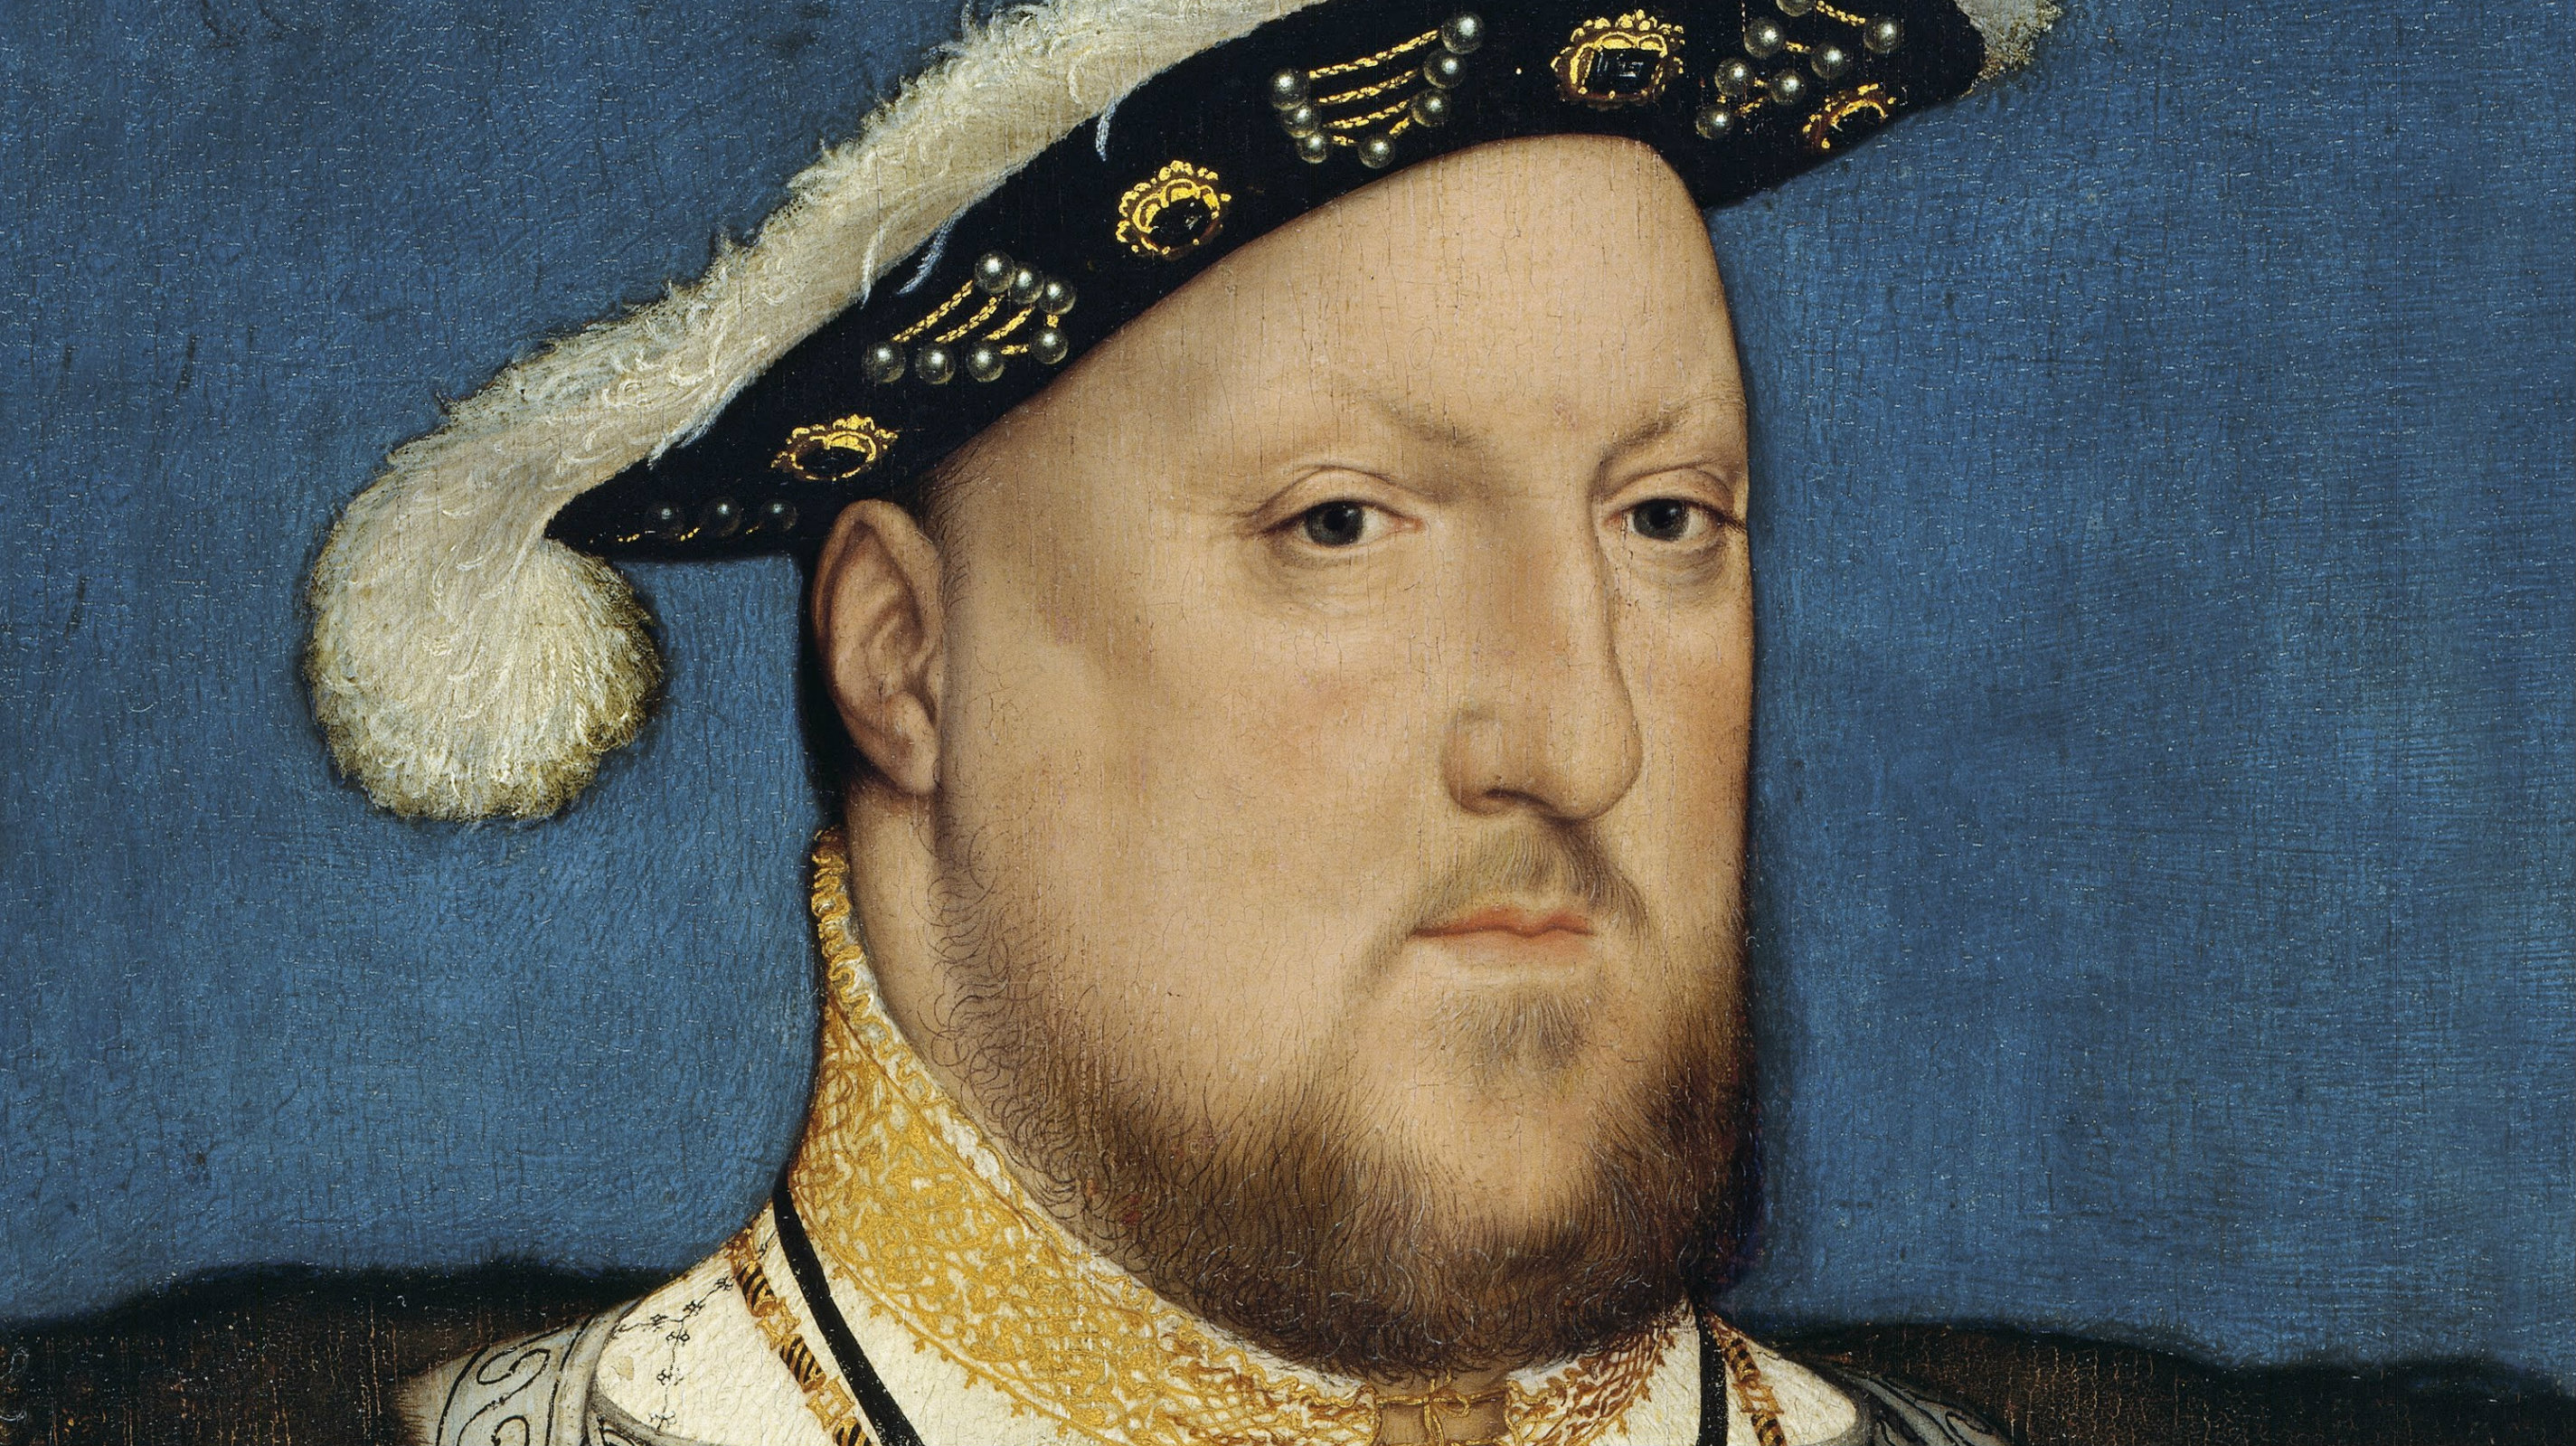 Henry VIII's erratic behavior was likely caused by an NFL